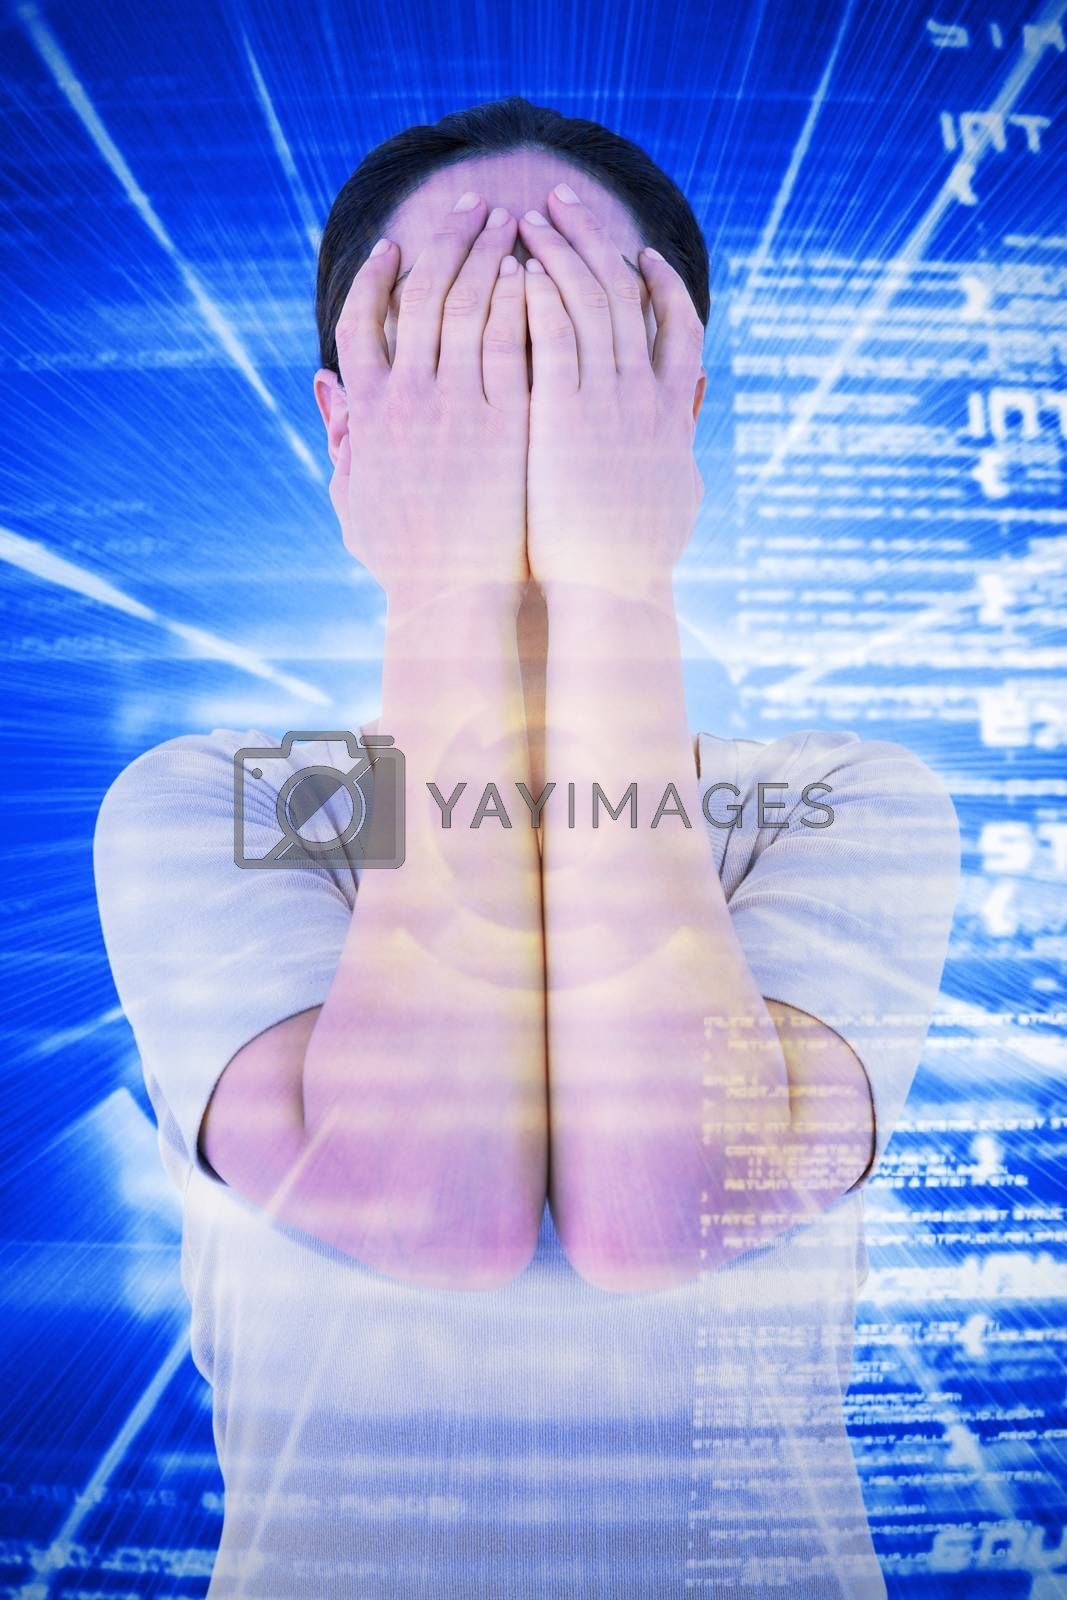 Sad woman hiding her face against blue background with coding